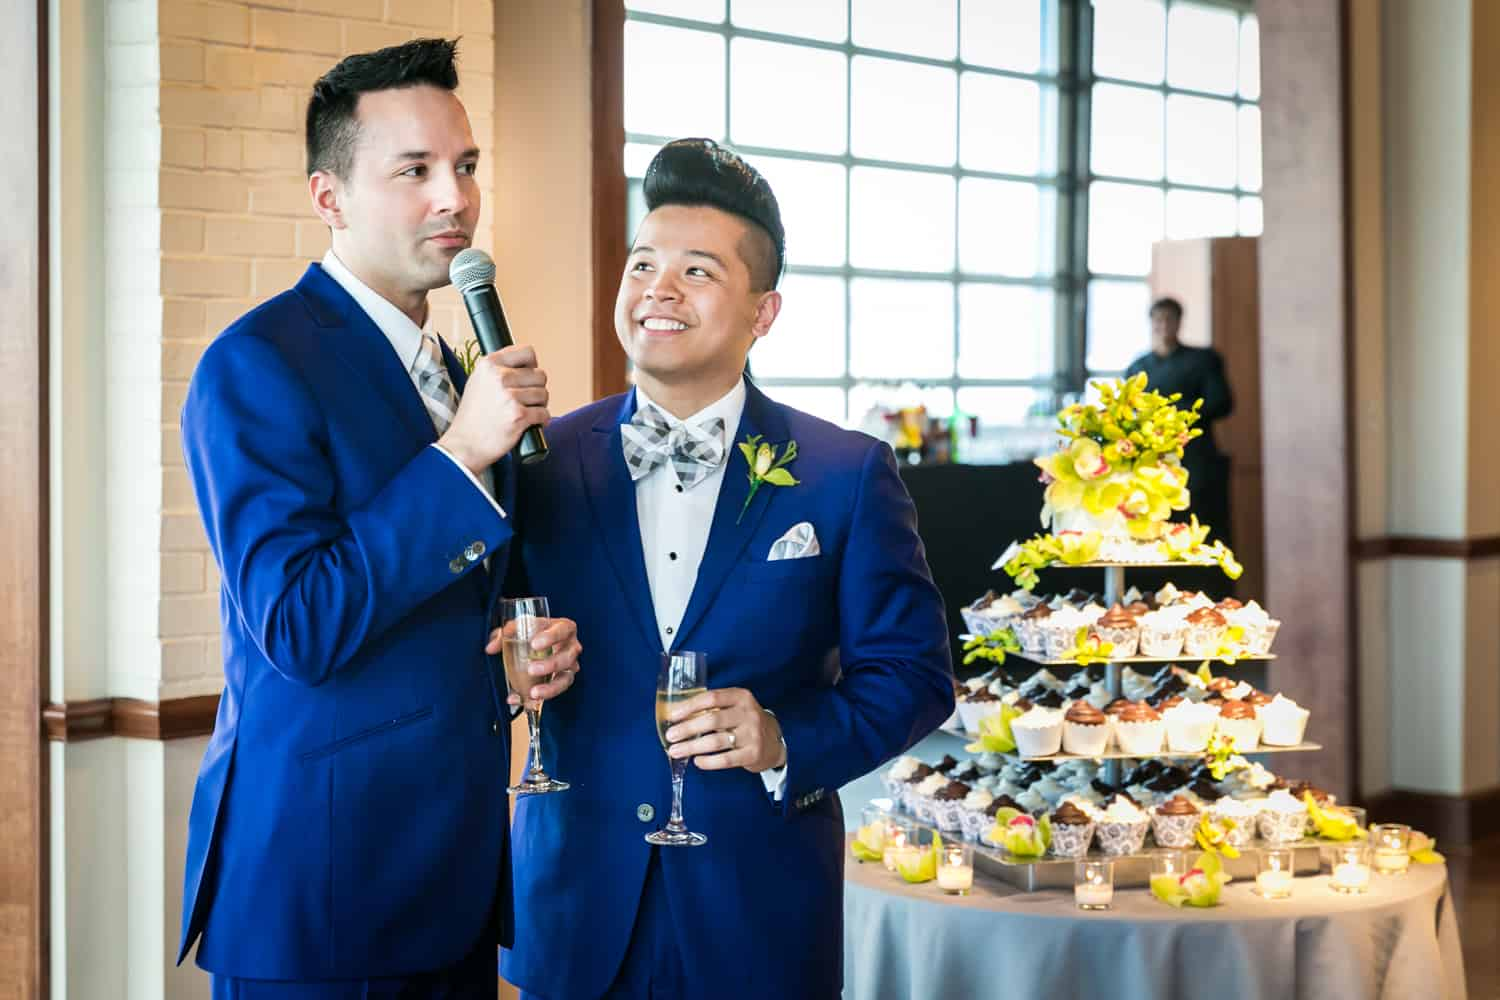 Two grooms making a speech beside tier of cupcakes